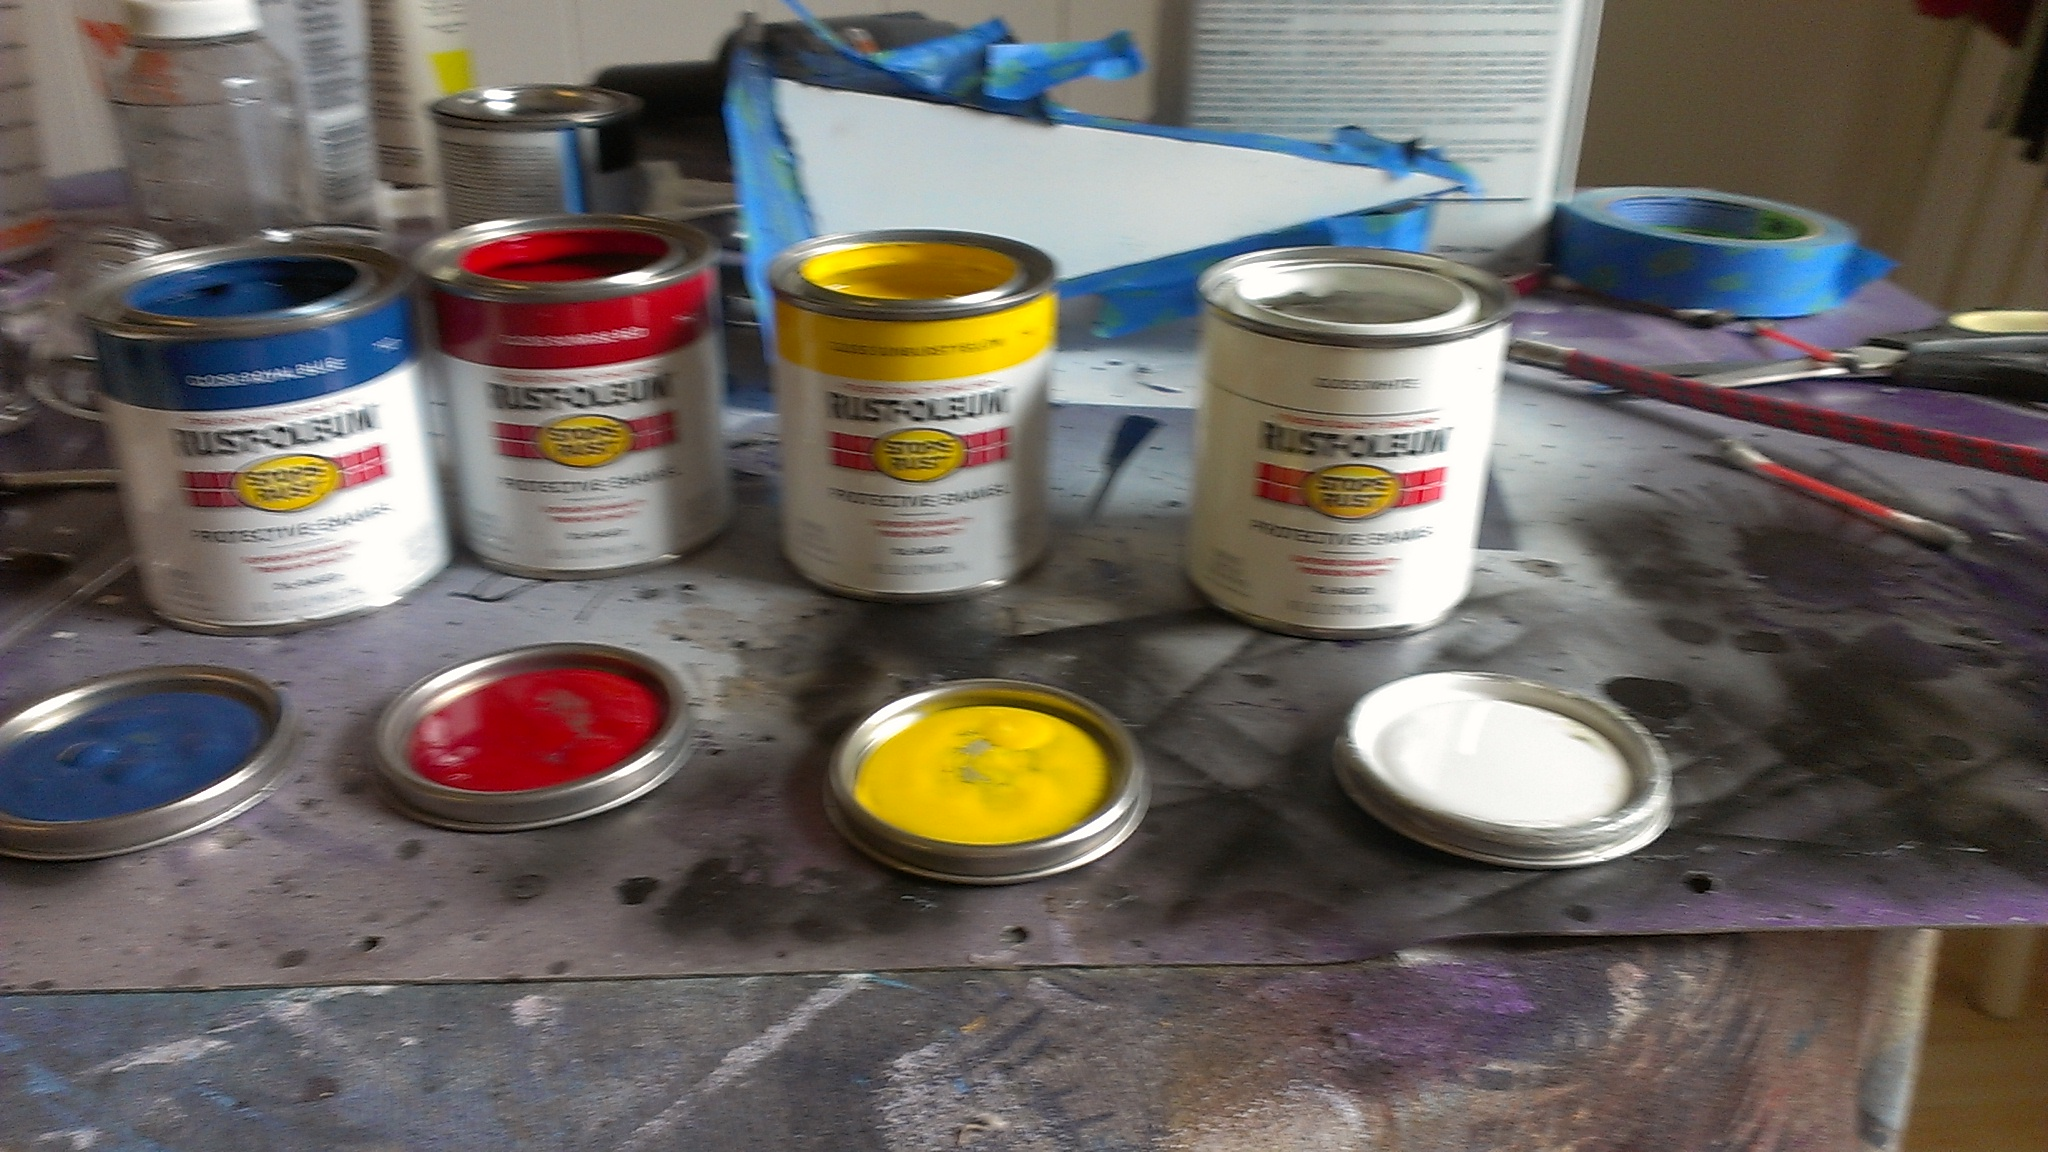 Custom Made Paint For Car In Cans